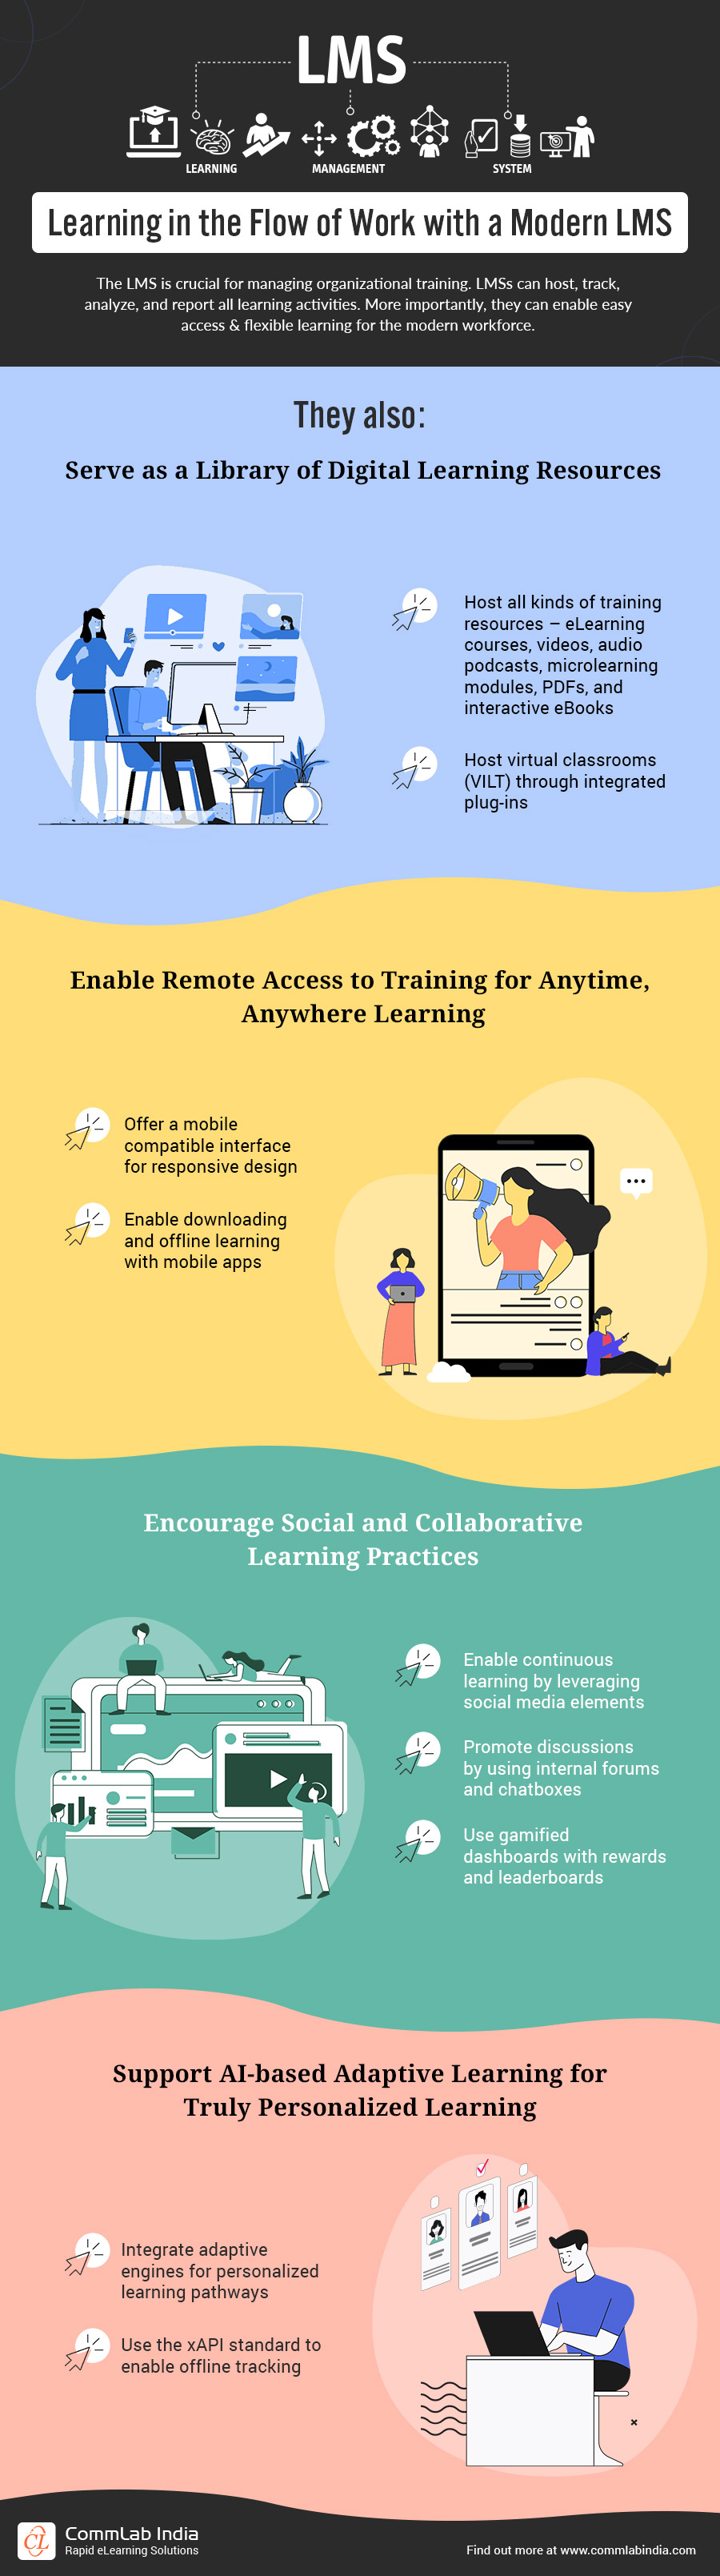 LMS: Easy, Flexible Learning for the Modern Workforce